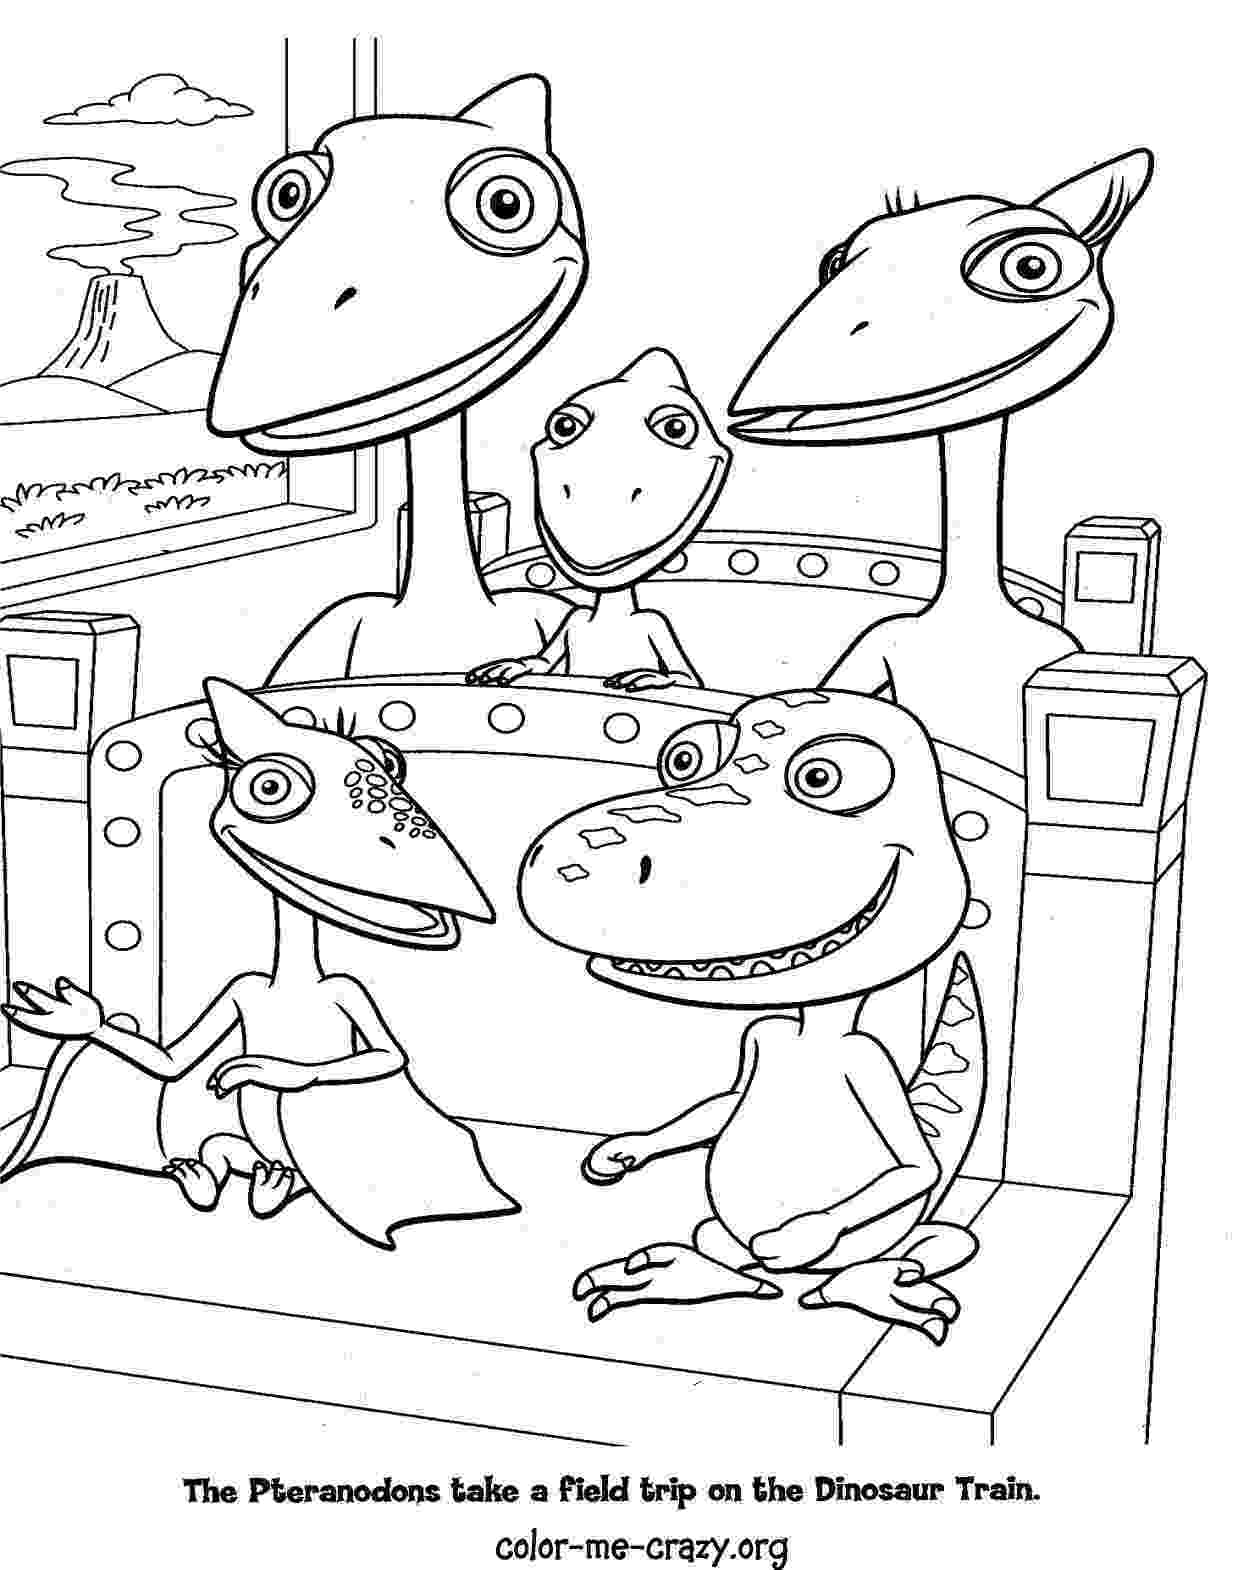 dinosaur pictures to color coloring pages dinosaur free printable coloring pages pictures color to dinosaur